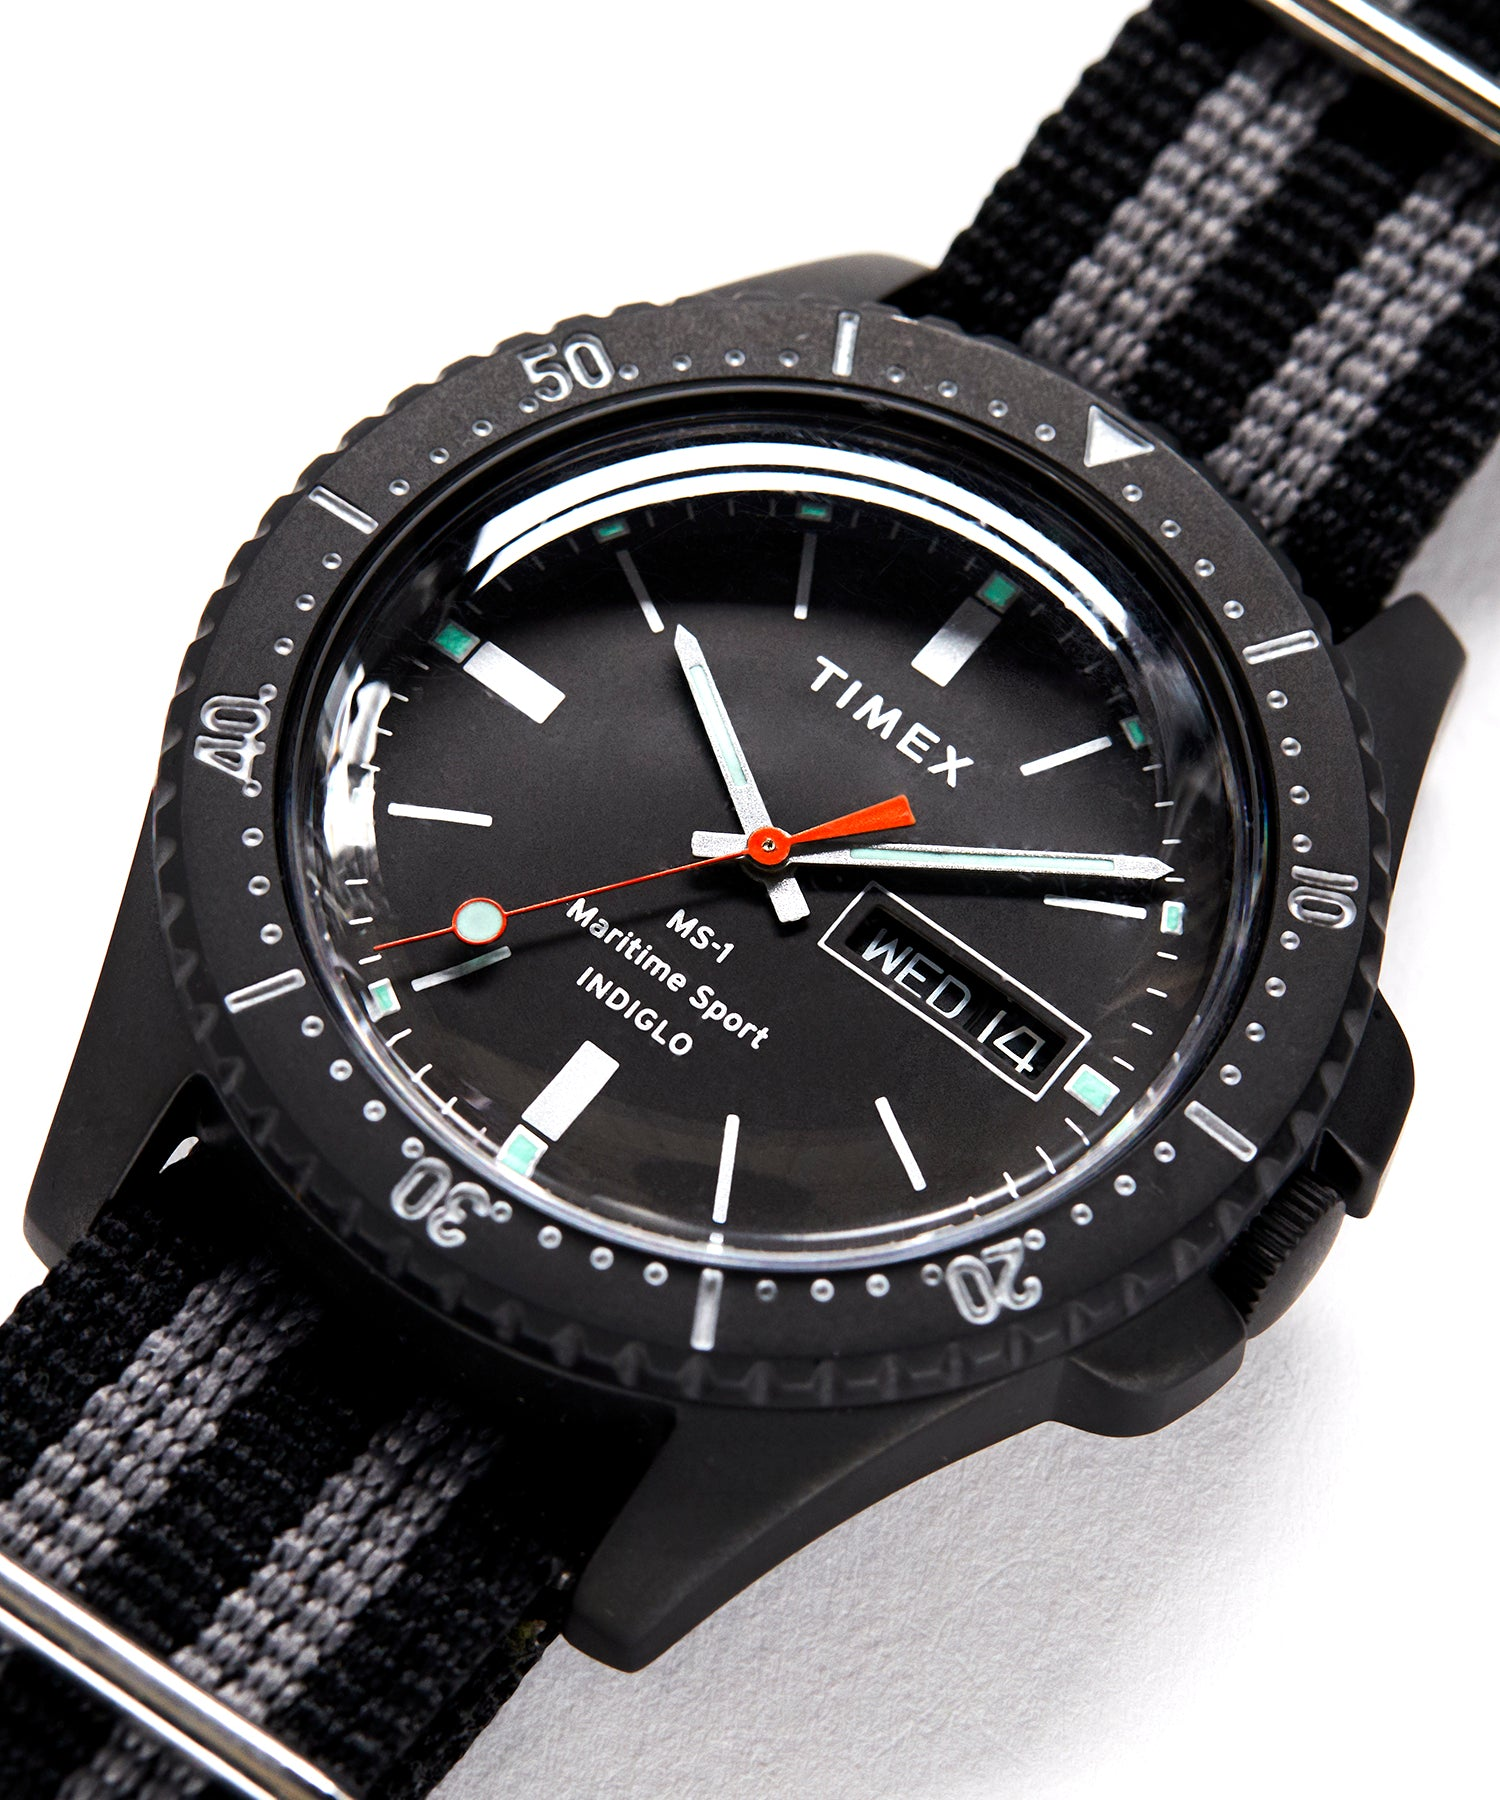 Timex + Todd Snyder Maritime Sport MS1 Watch in Black 41mm